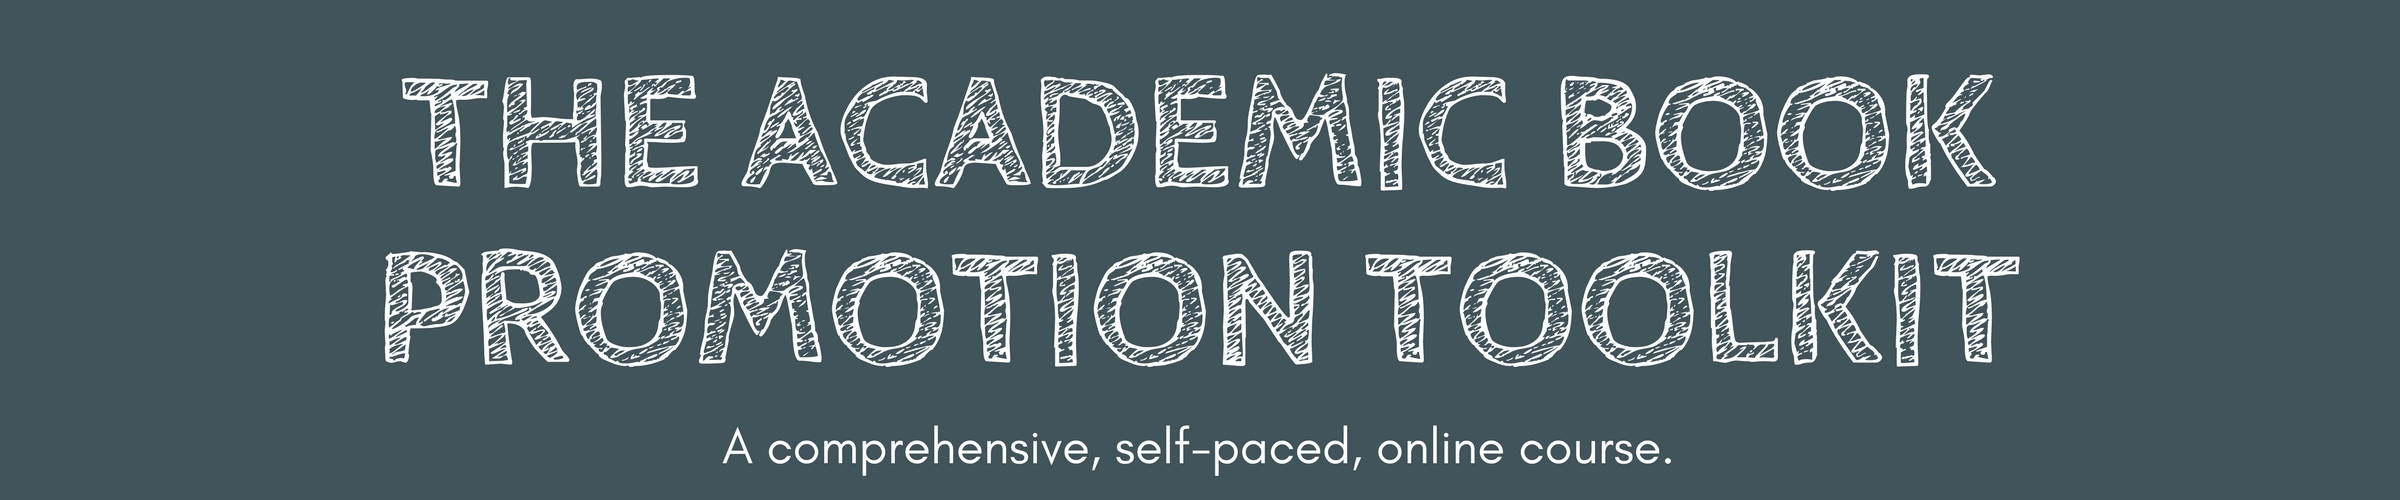 Cover teachery   the academic book promotion toolkit header images